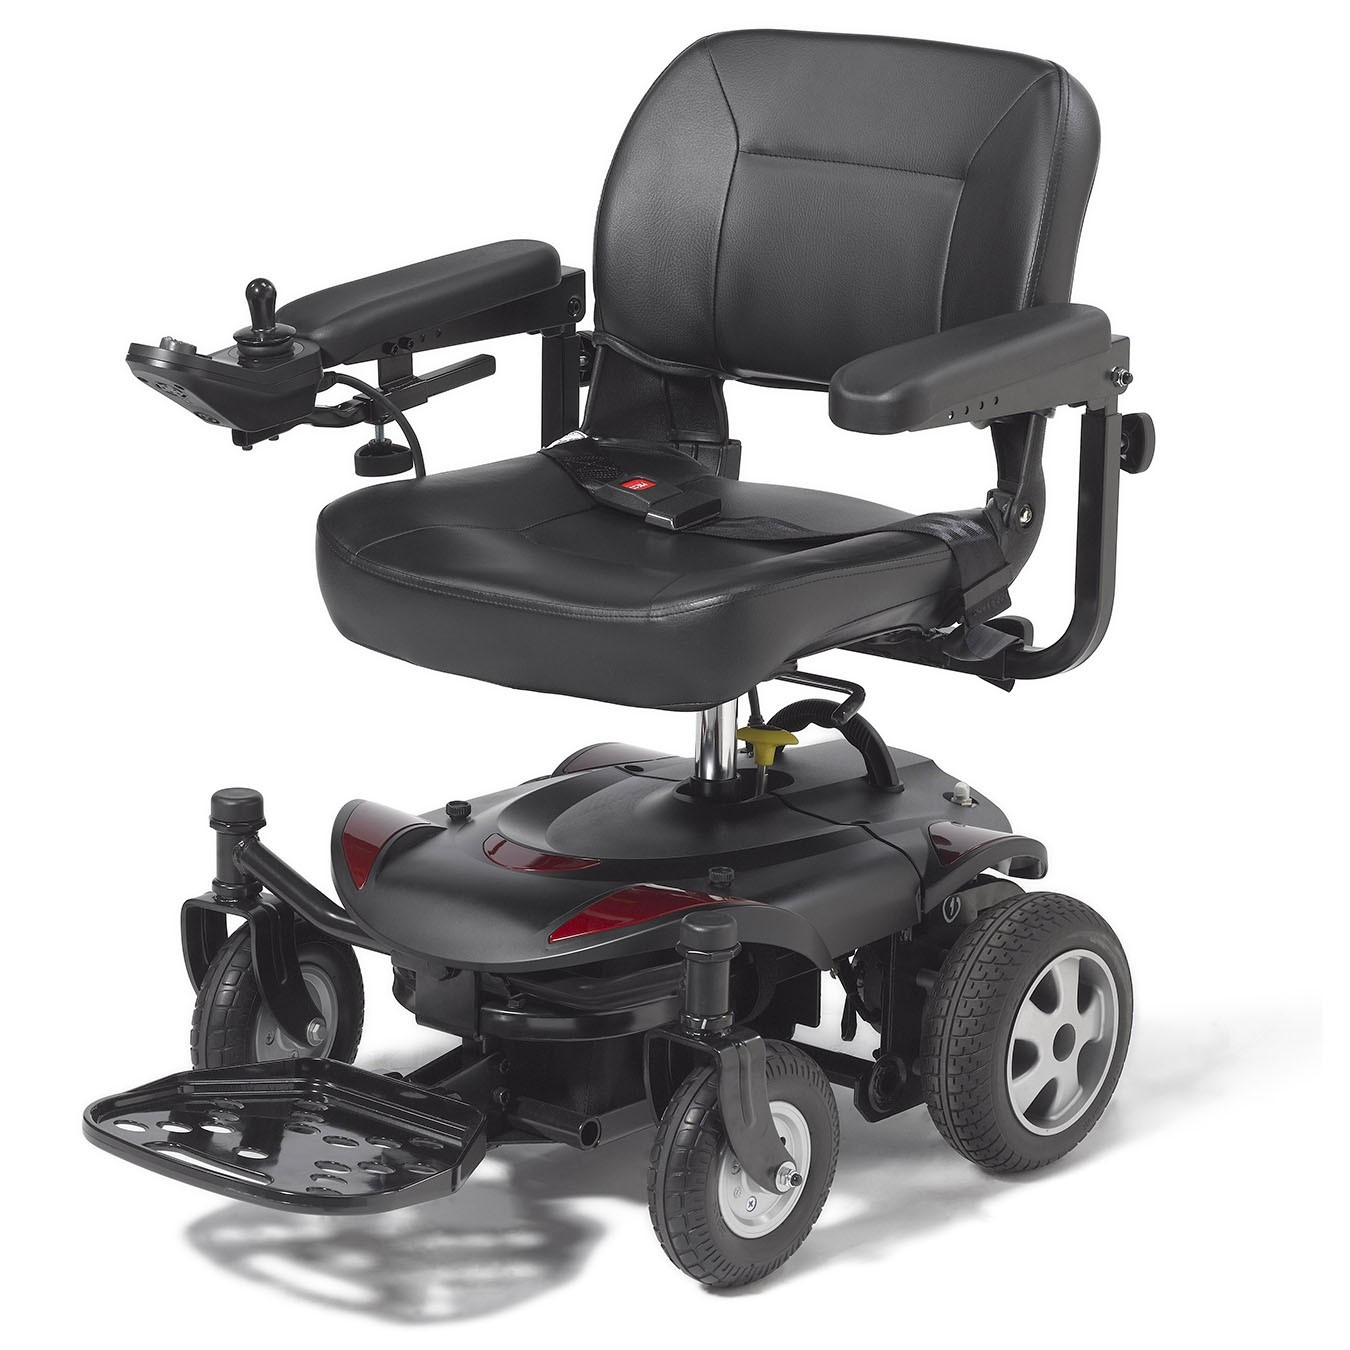 motor chairs for sale patio chair strap repair drive medical titan lte power wheelchair tax free lowest